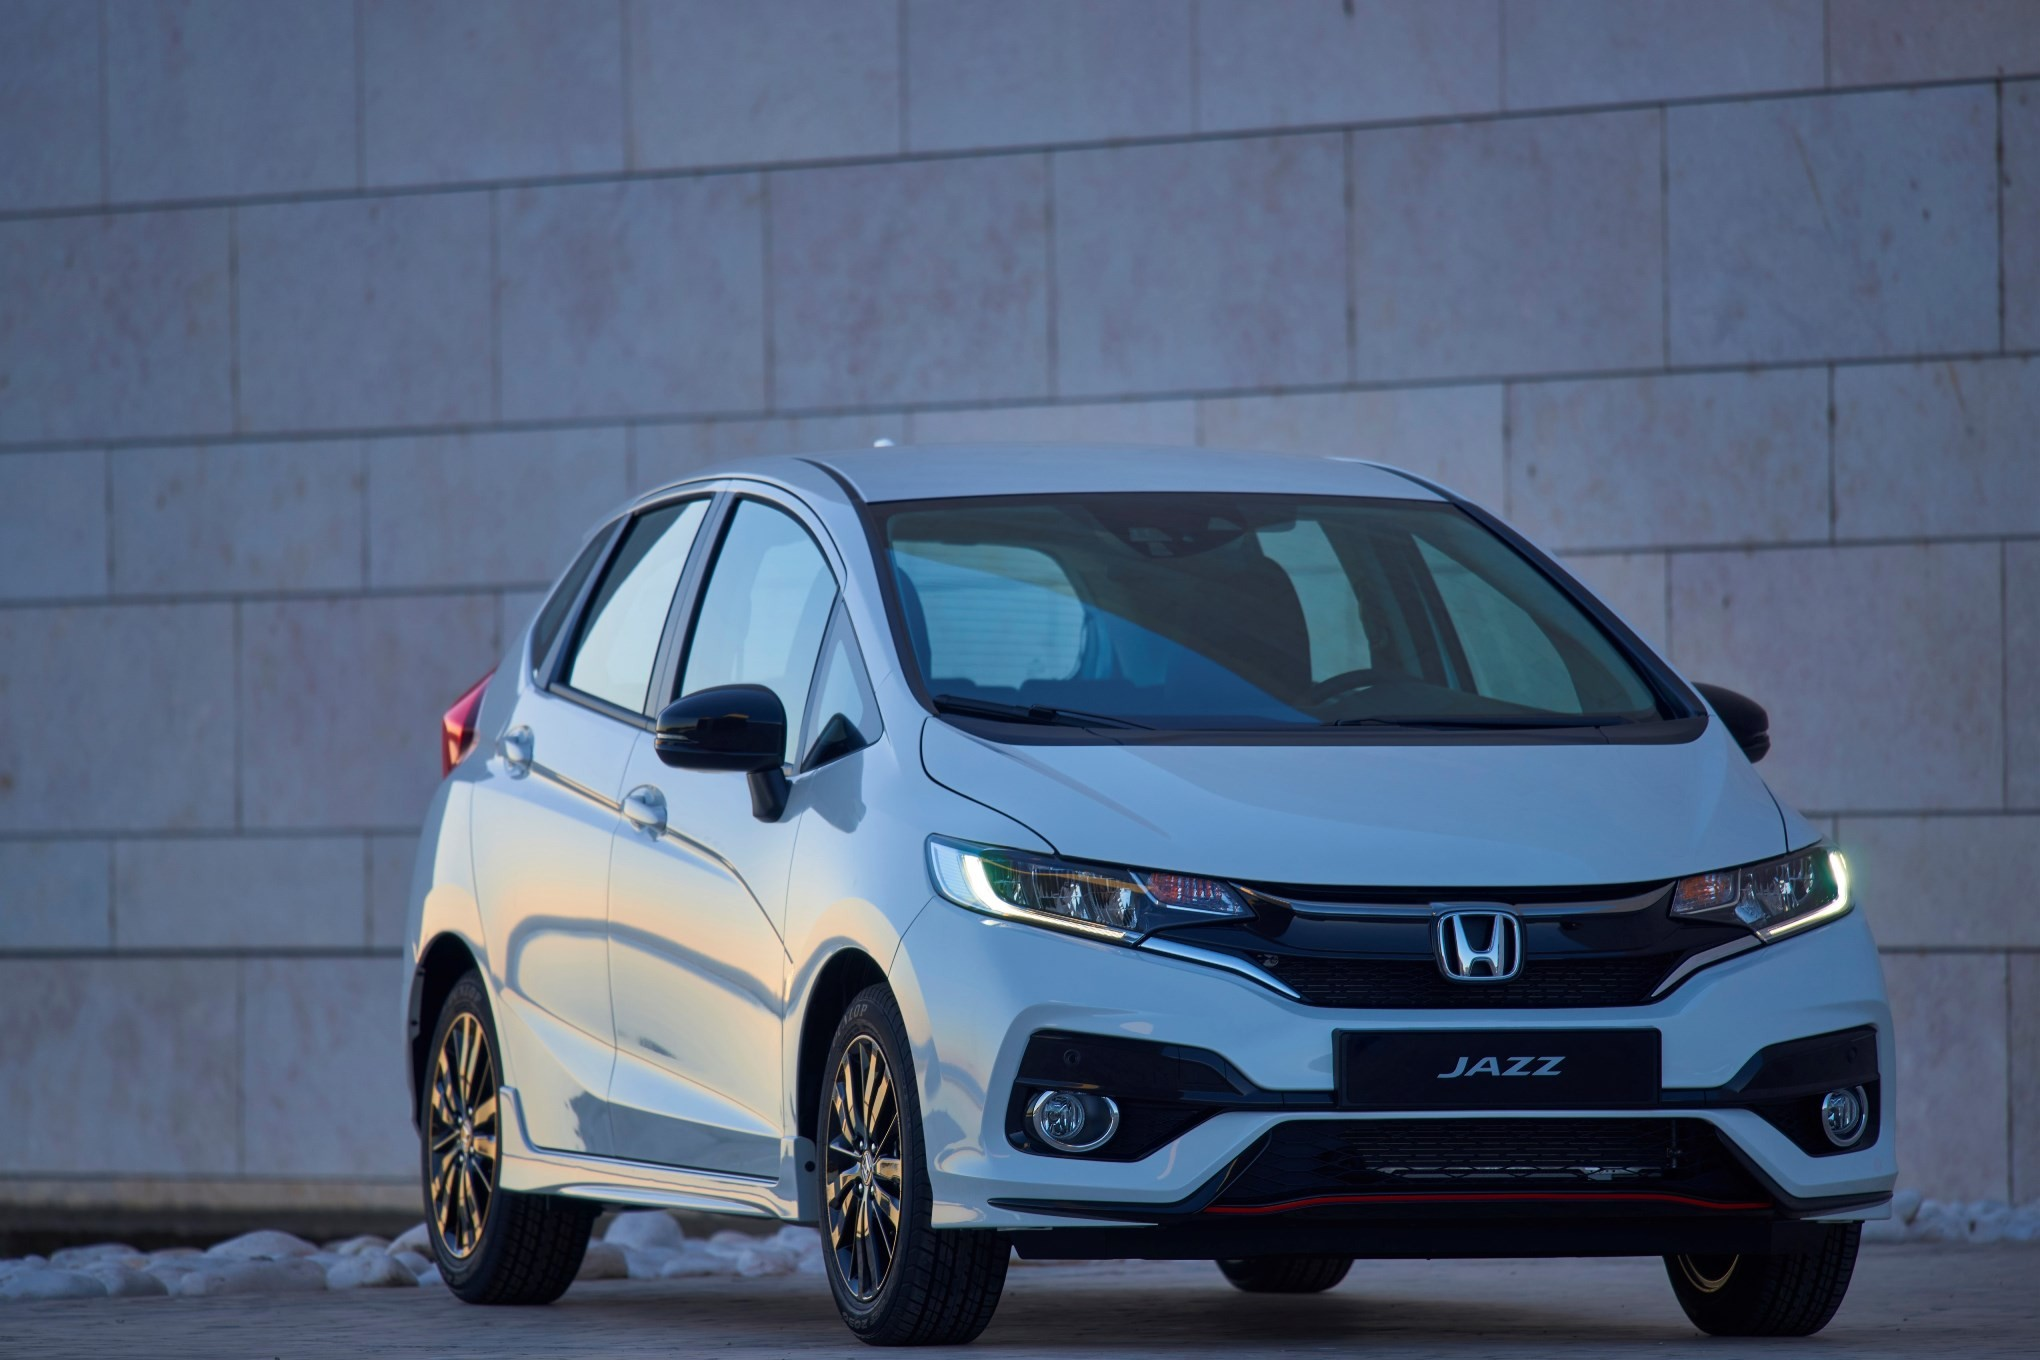 Honda Jazz gets a fresh face for 2018